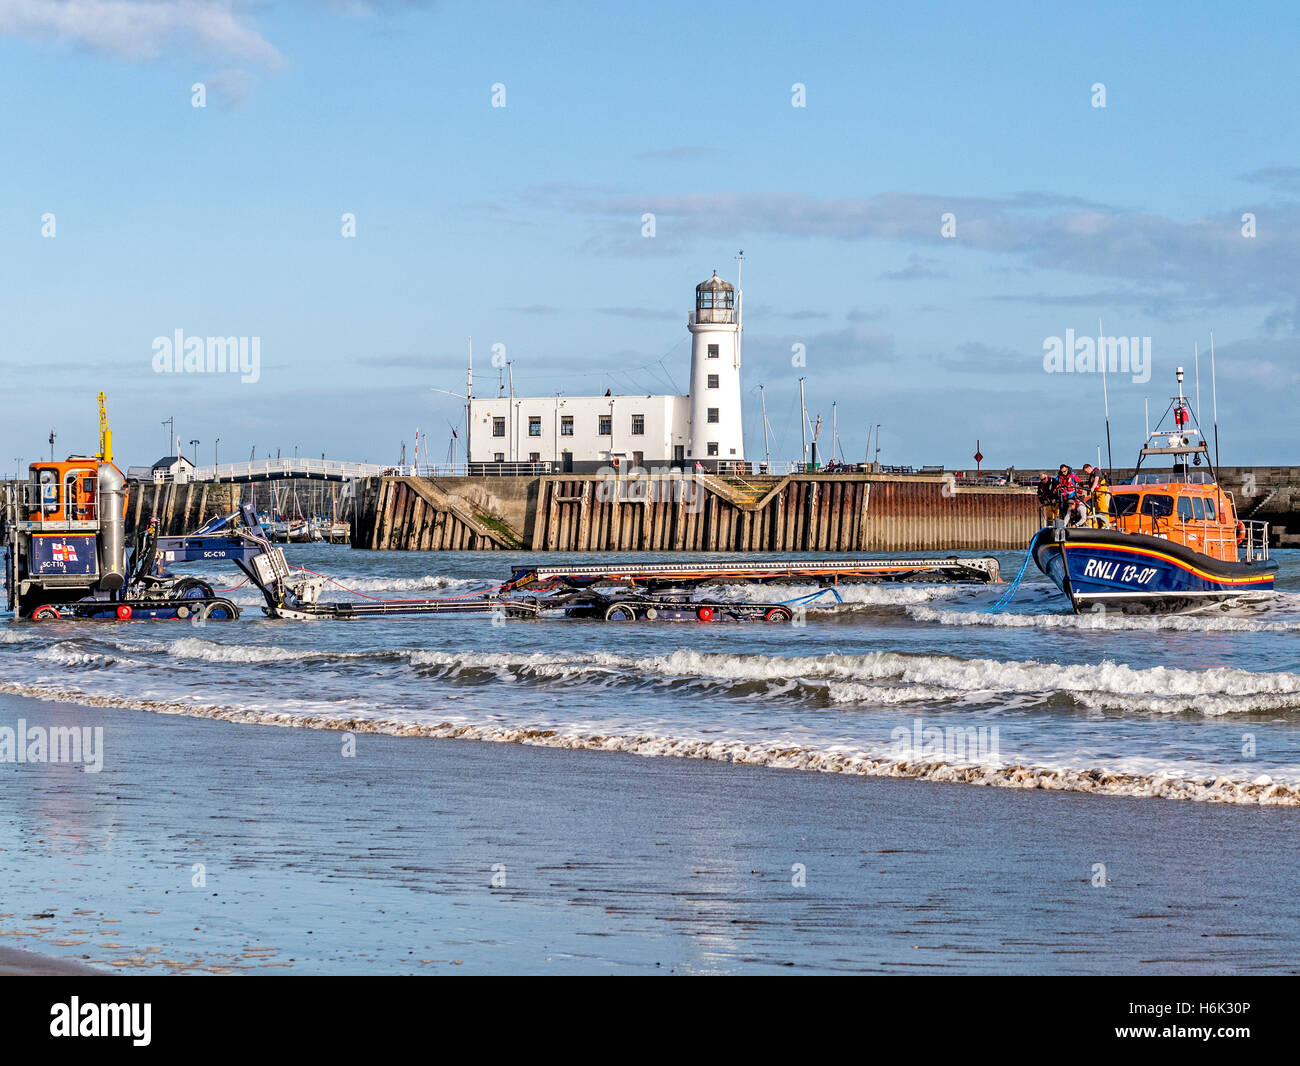 Recovering Shannon Class Lifeboat 13-07 with the Supercat Tractor and Carriage  at Scarborough Yorkshire UK - Stock Image